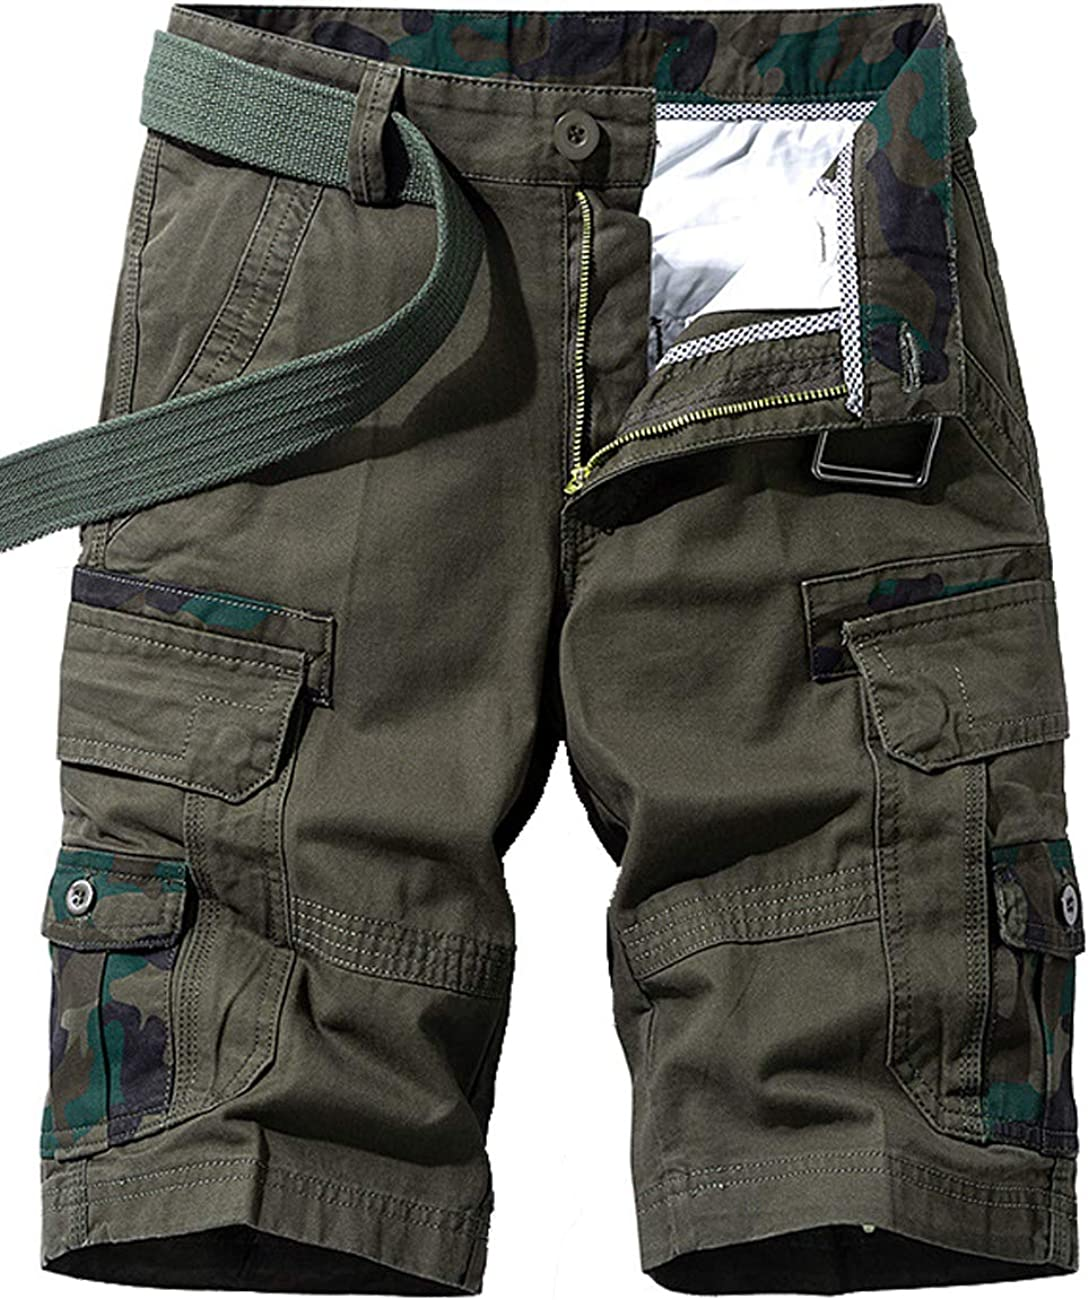 Men's Lightweight Multi Pocket Casual Cargo Shorts with No Belt 7.Army Green 30